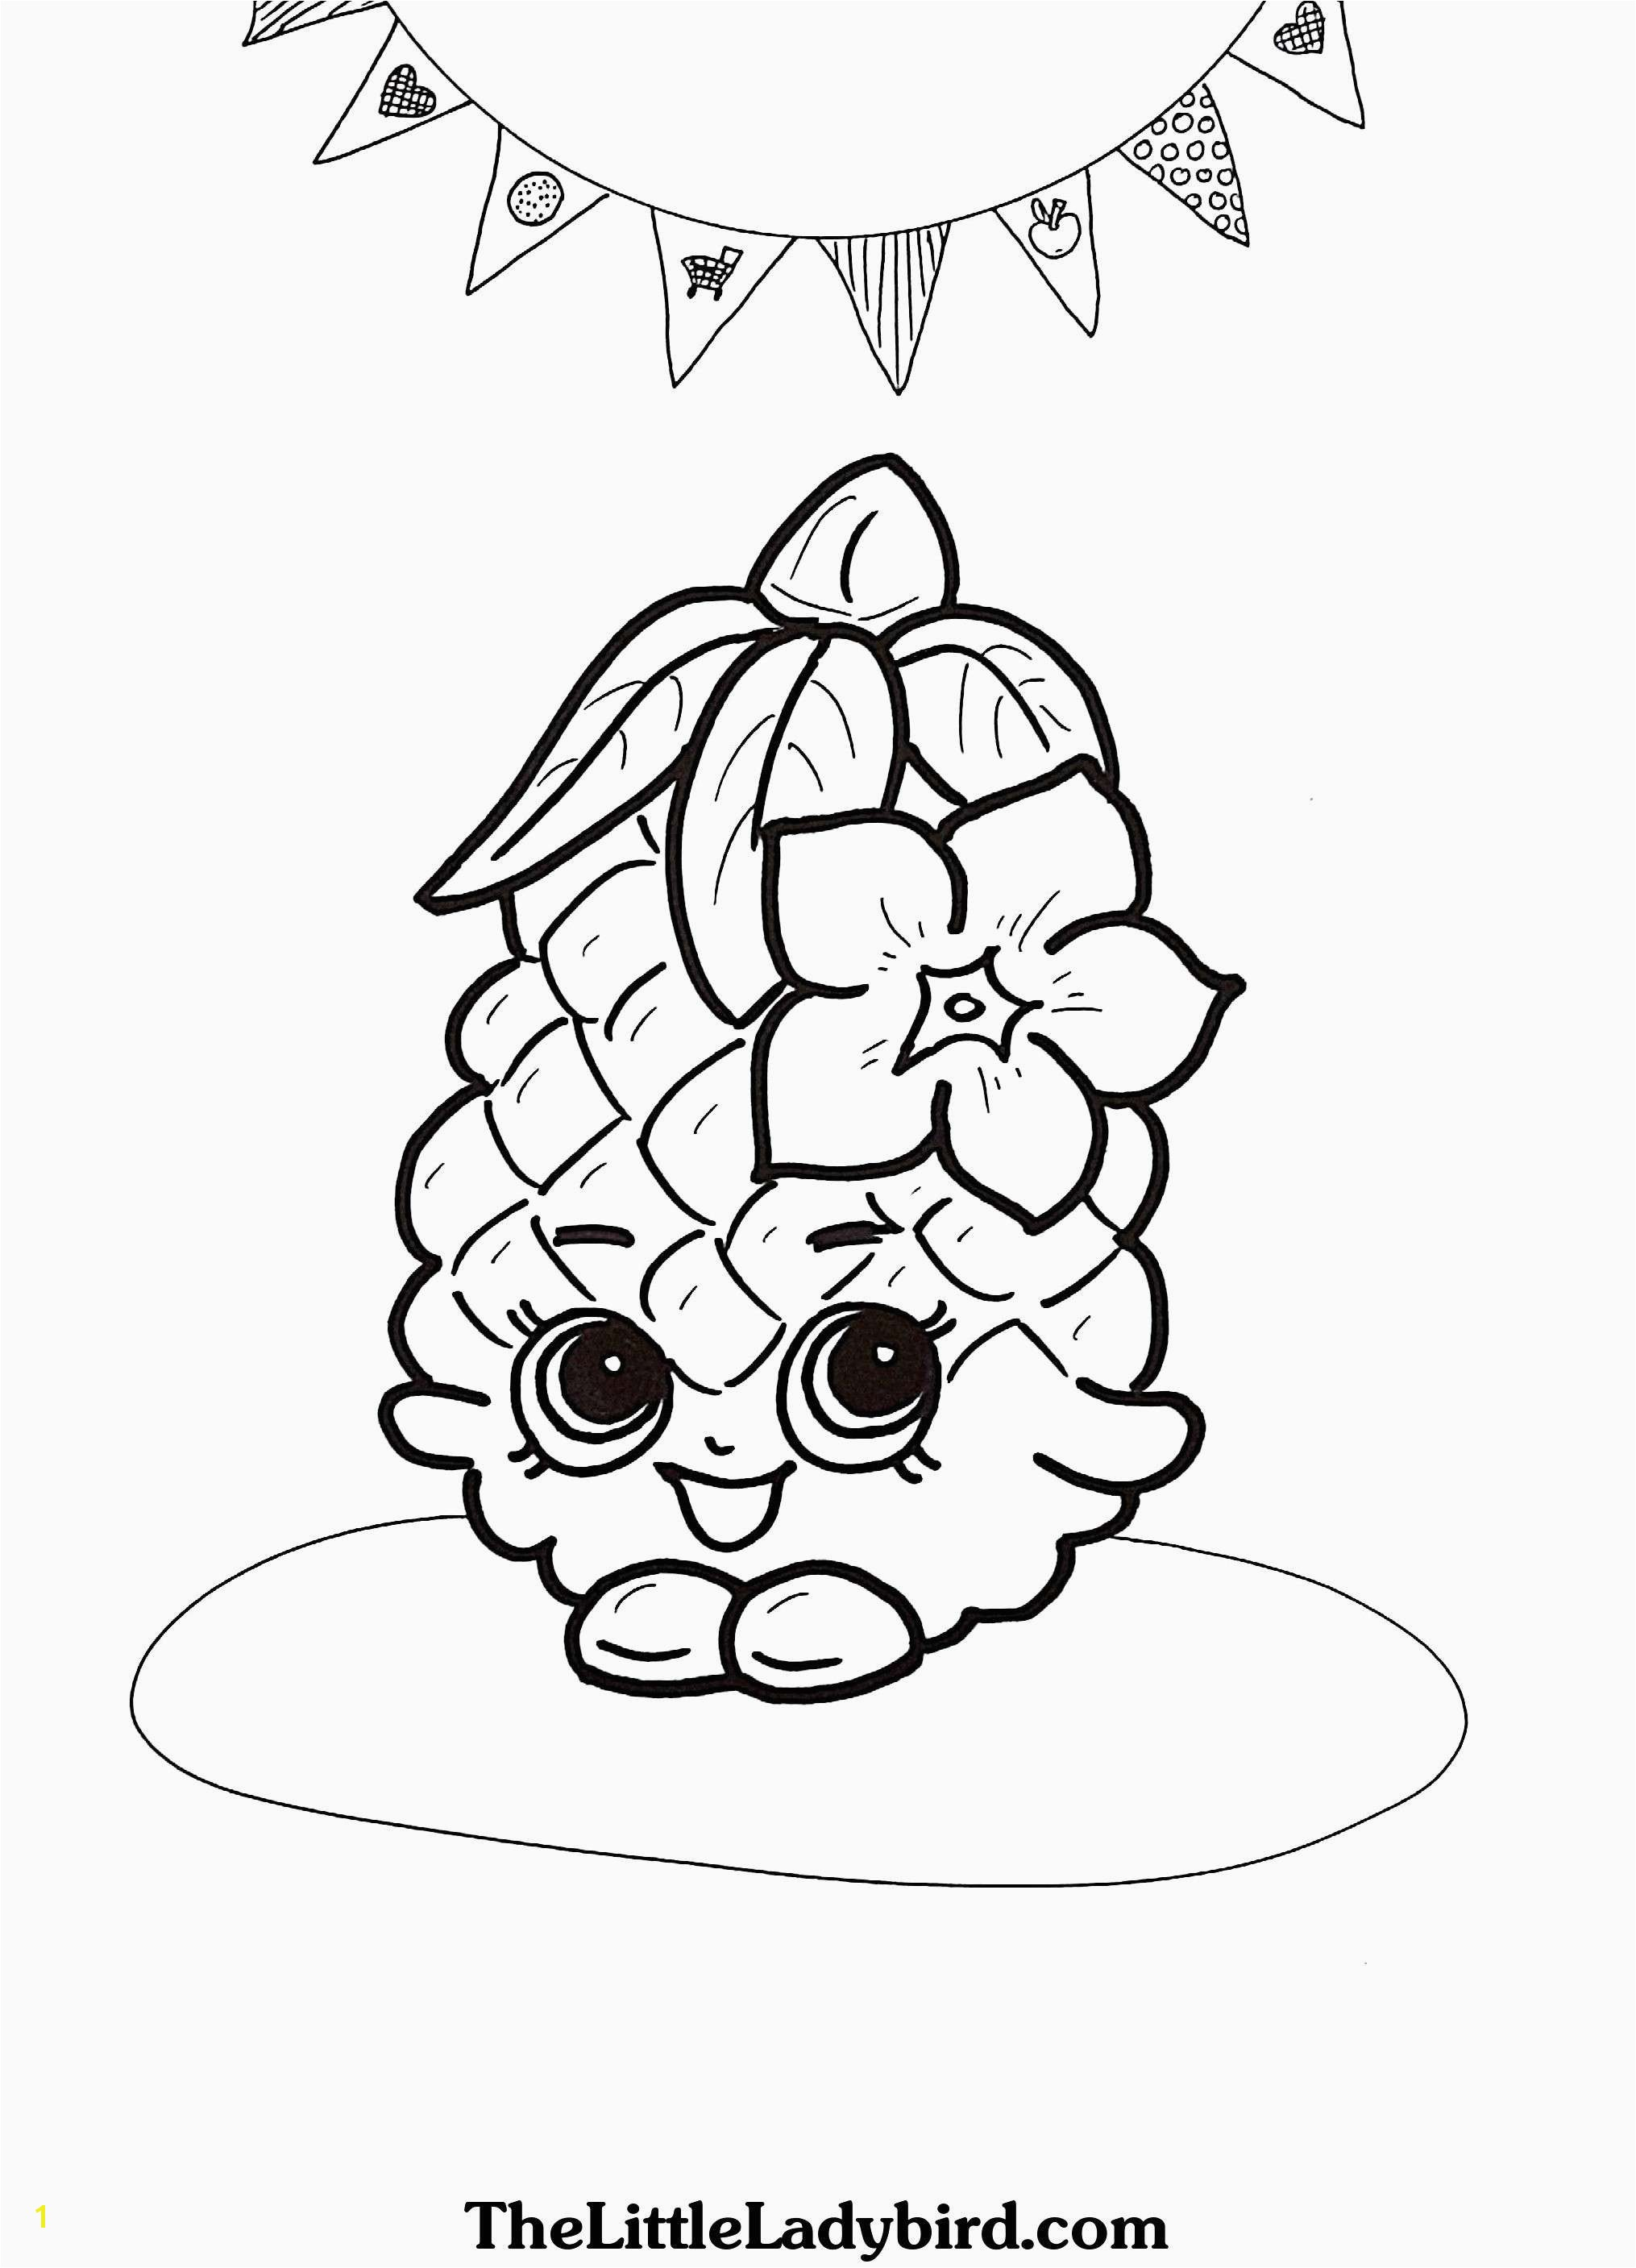 Utv Coloring Pages How to Draw A Disney Princess Step by Step Free Coloring Sheets